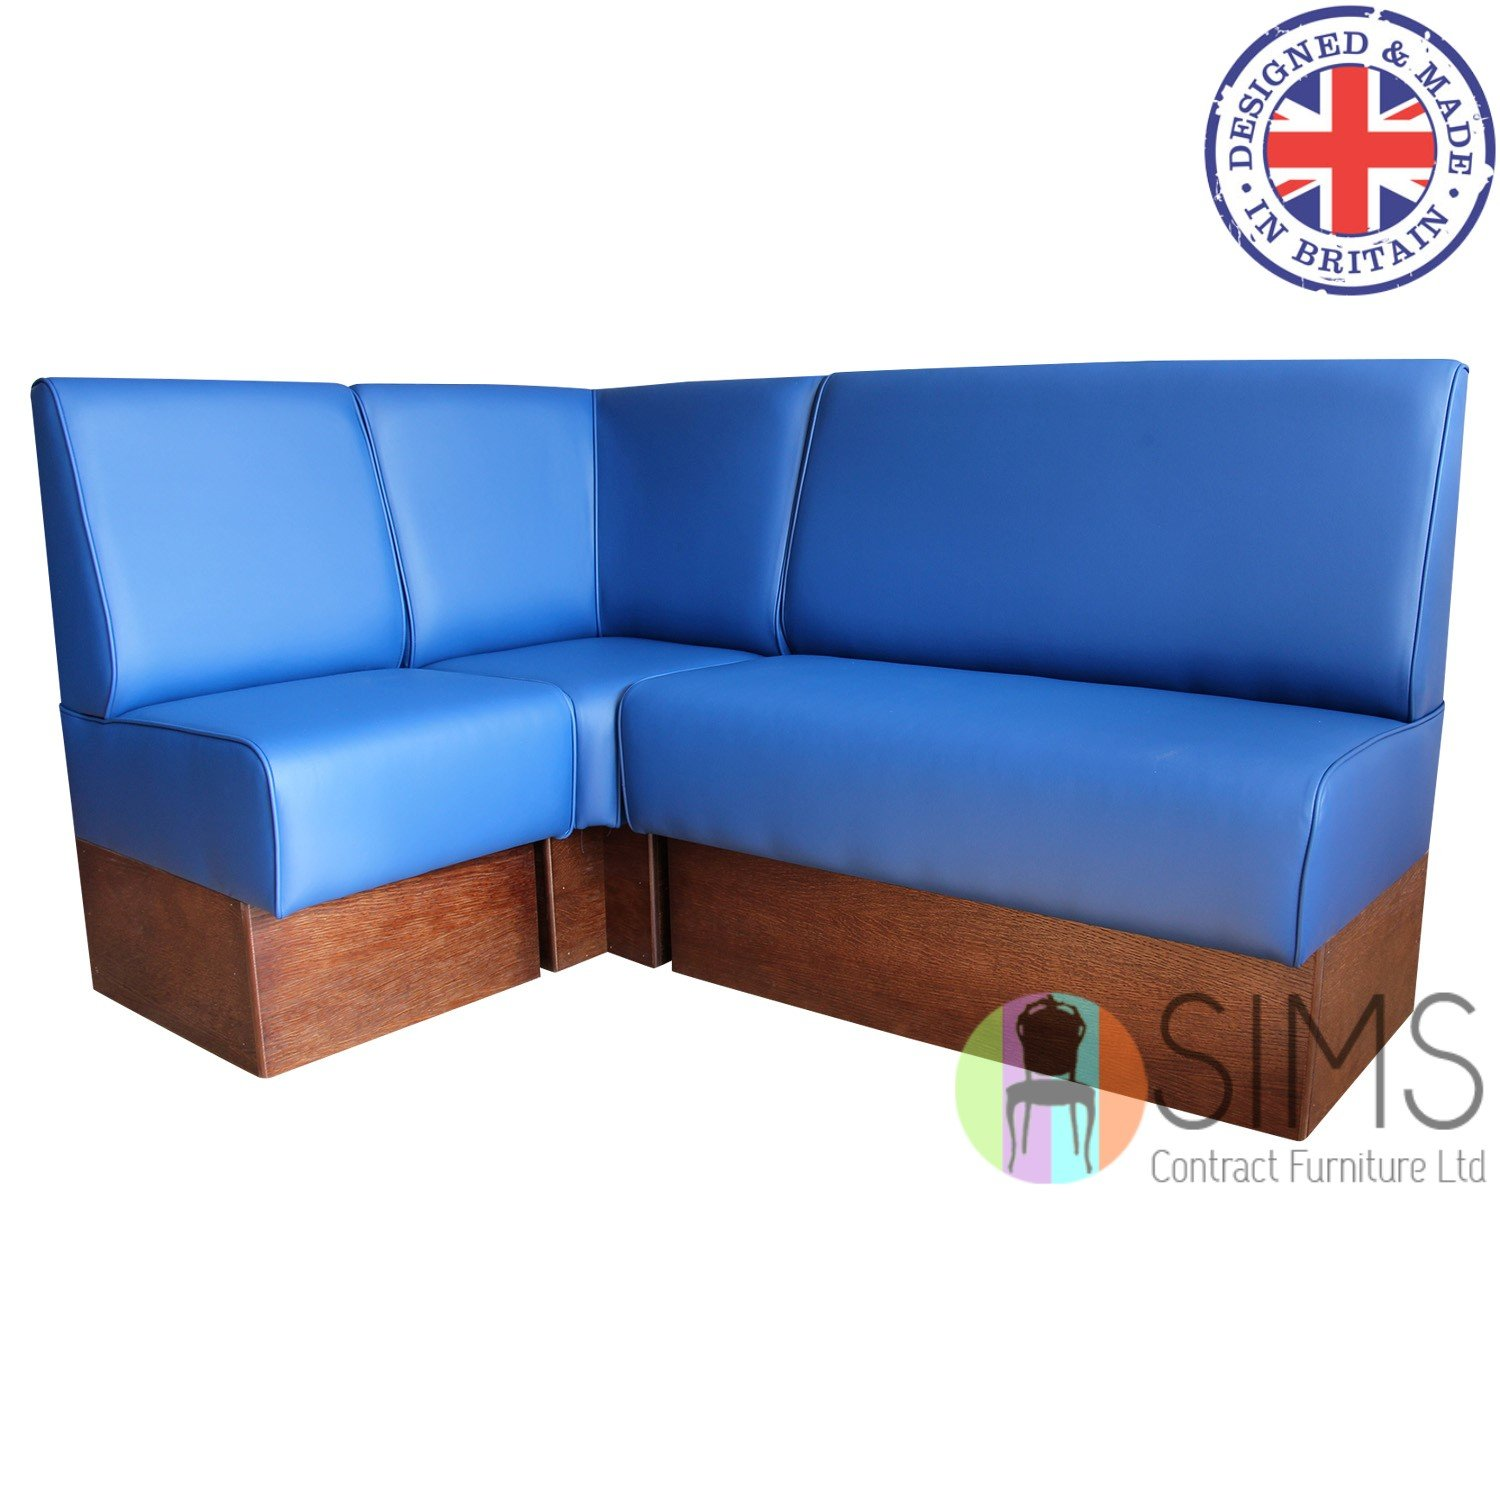 Modular Banquette Seating: Modular Banquette Fitted Bench Seating